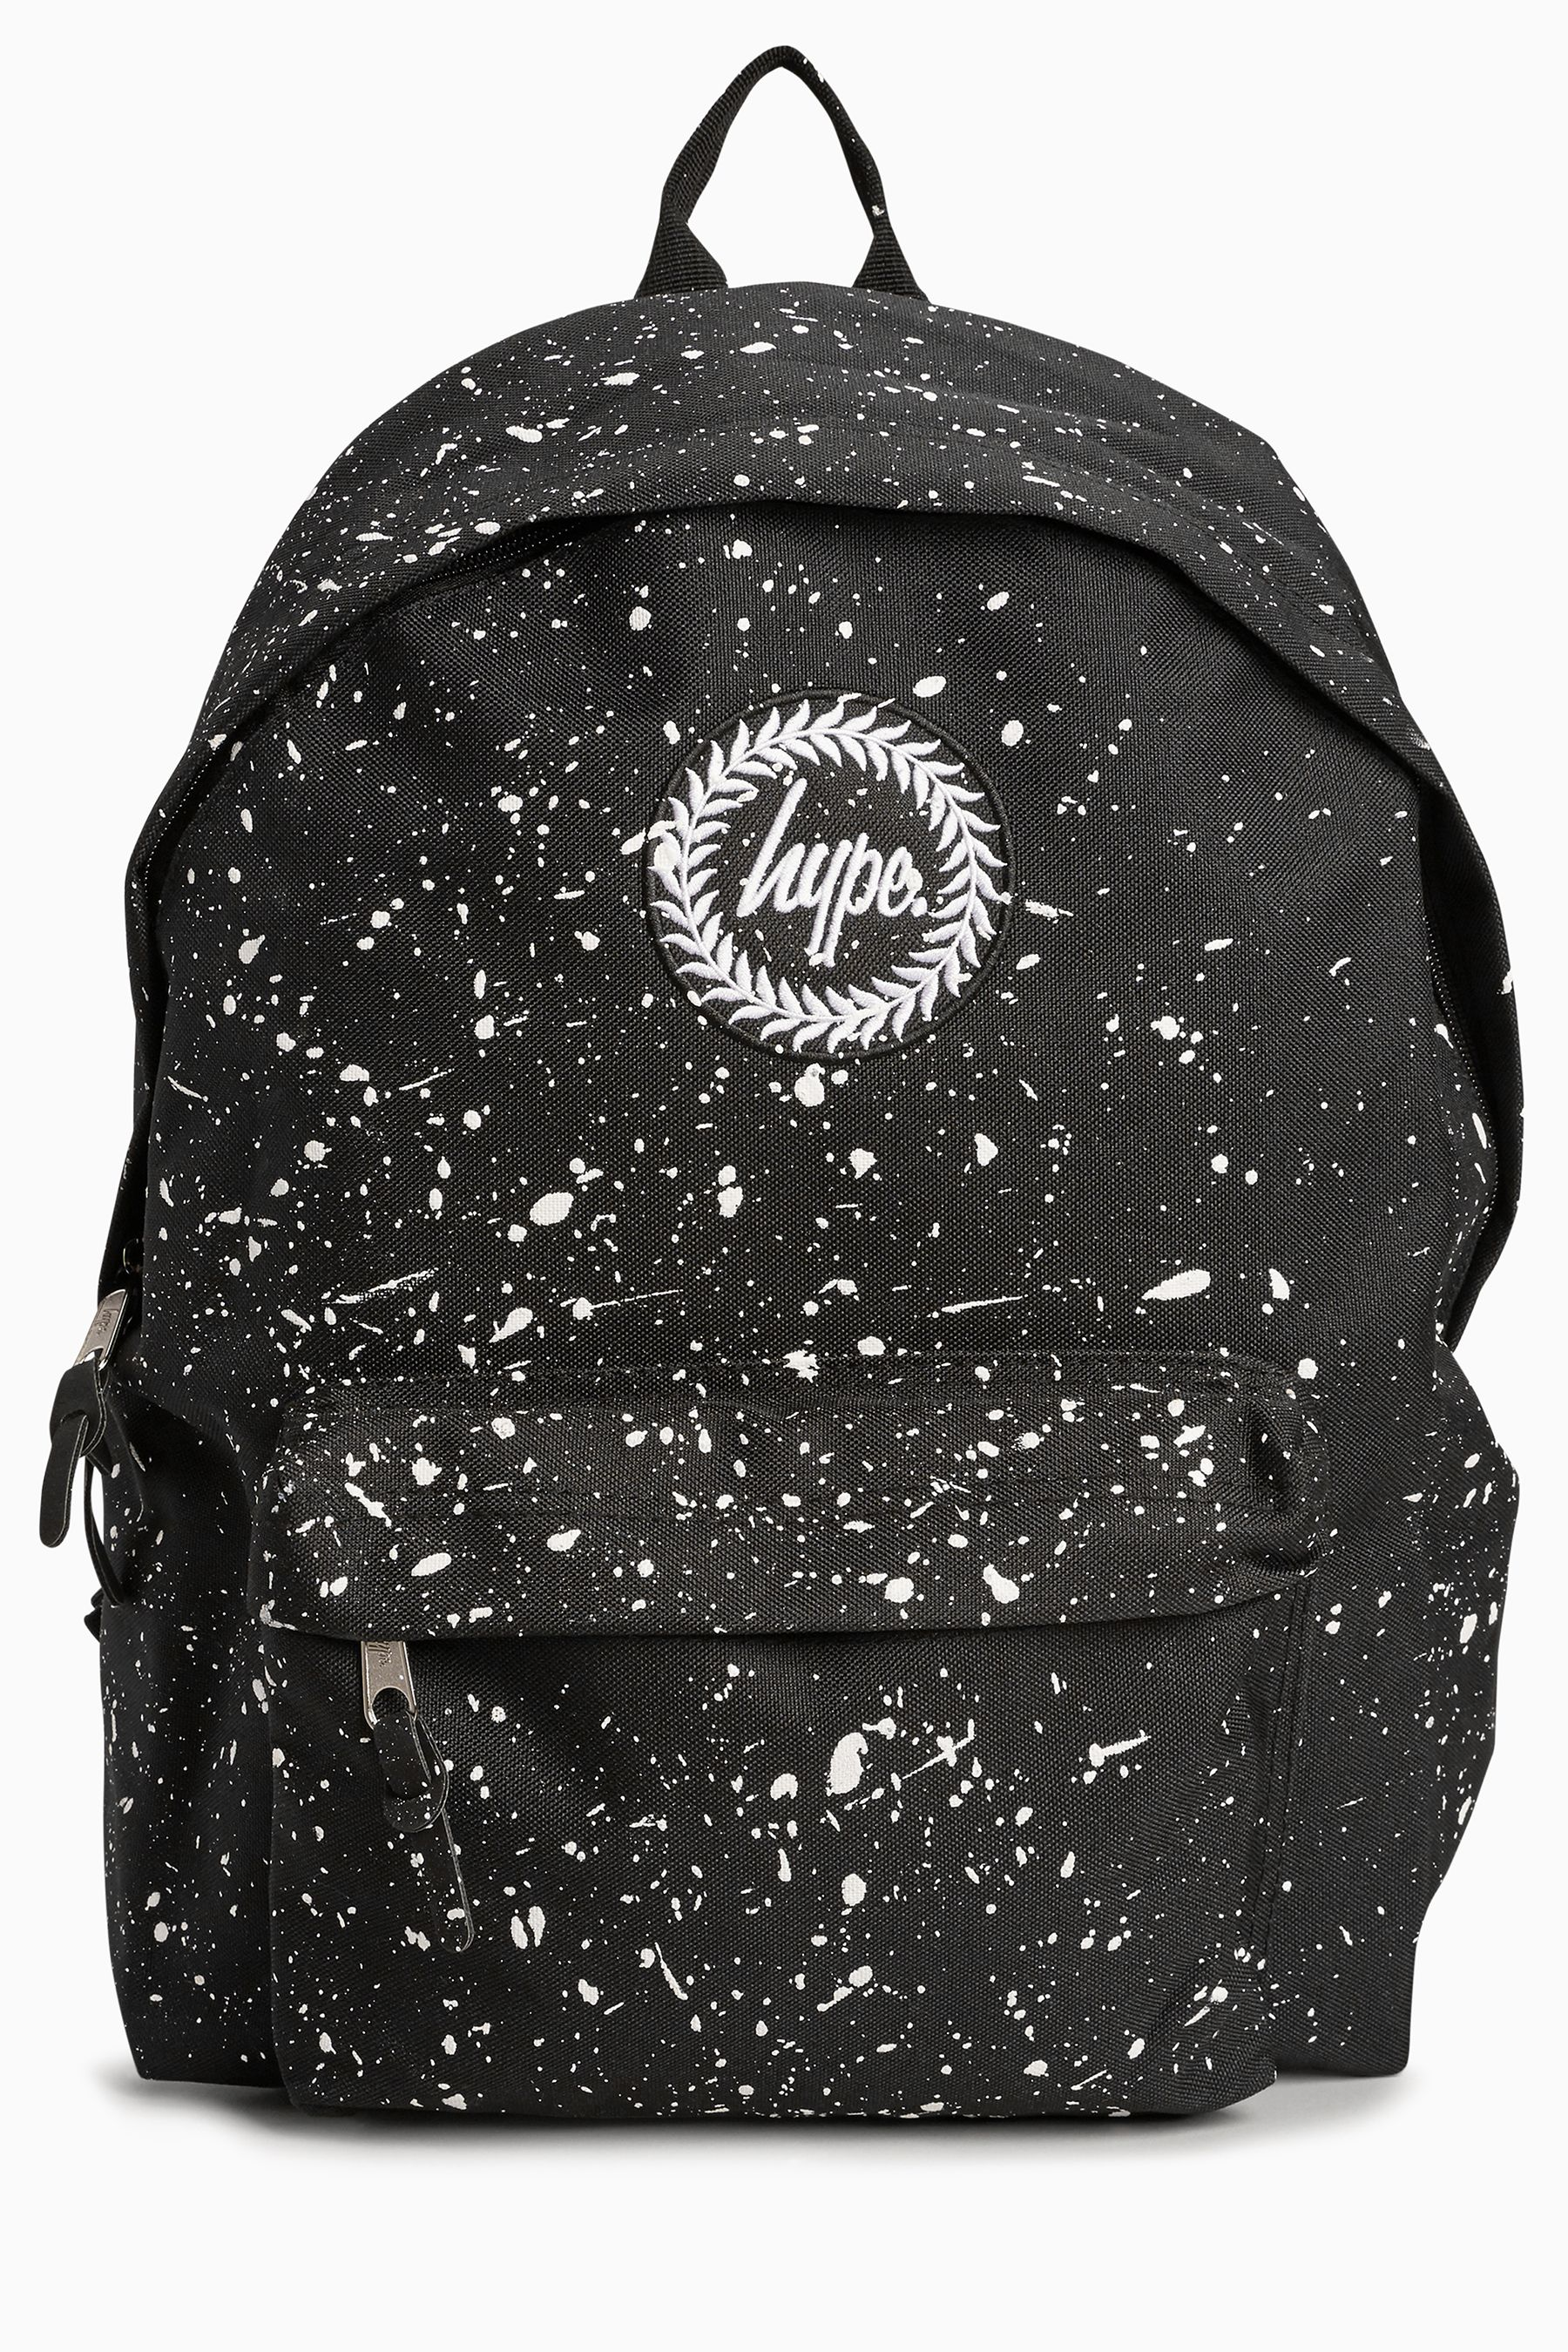 daca0d86401 Shop the bags for women at ASOS. Mens Hype. Black/White Speckle Backpack -  Blue